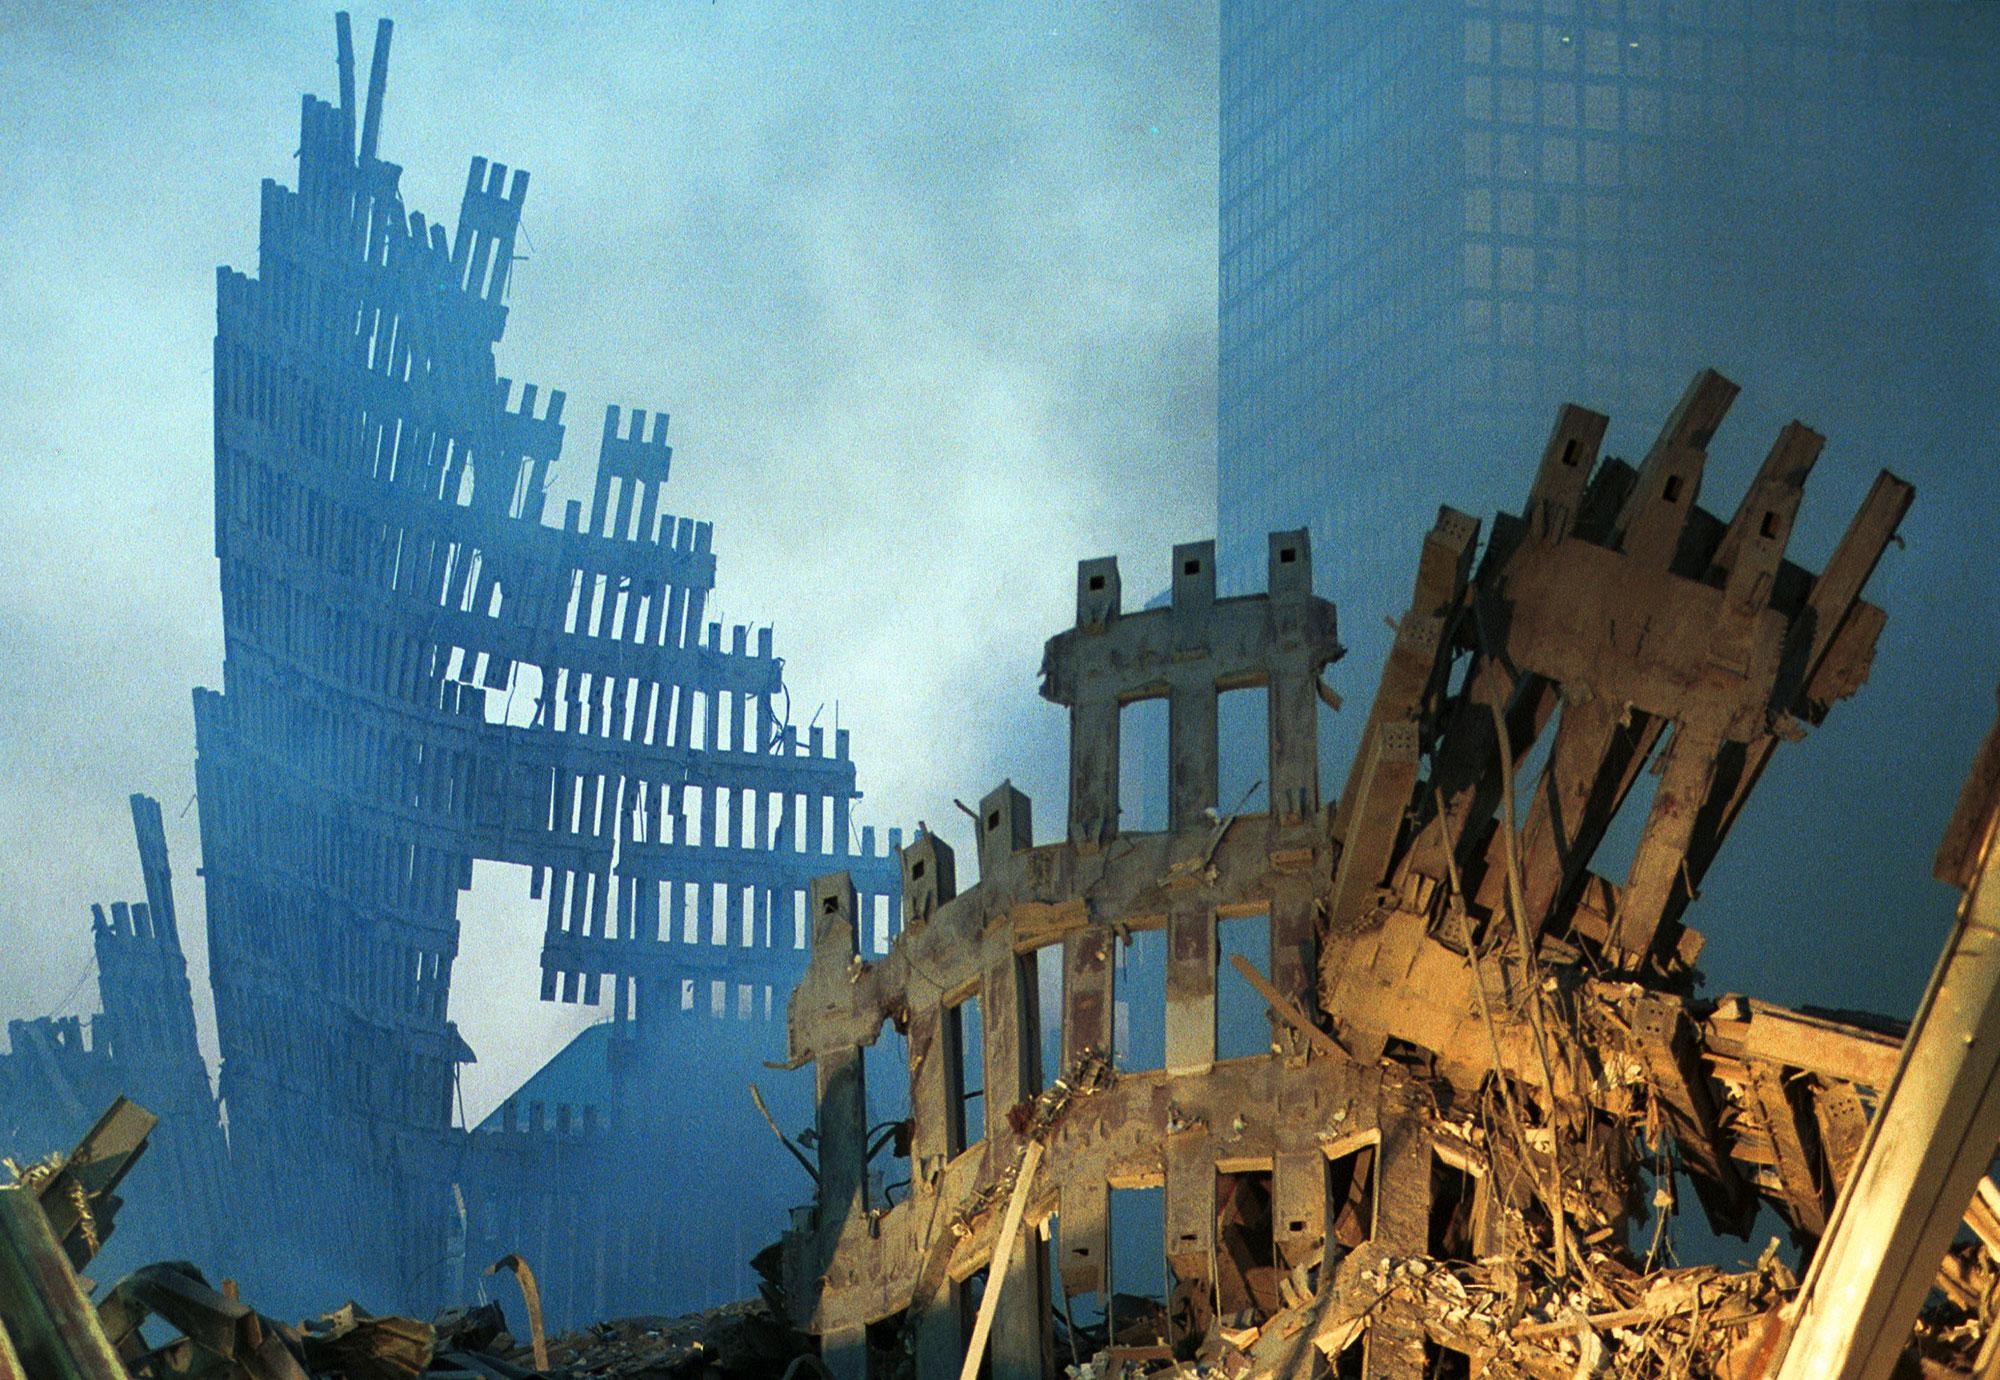 <p>Early morning light hits the smoke and wreckage of the World Trade Center September 13, 2001 in New York City, two days after the twin towers were destroyed when hit by two hijacked passenger jets. (Photo by Chris Hondros/Getty Images) </p>